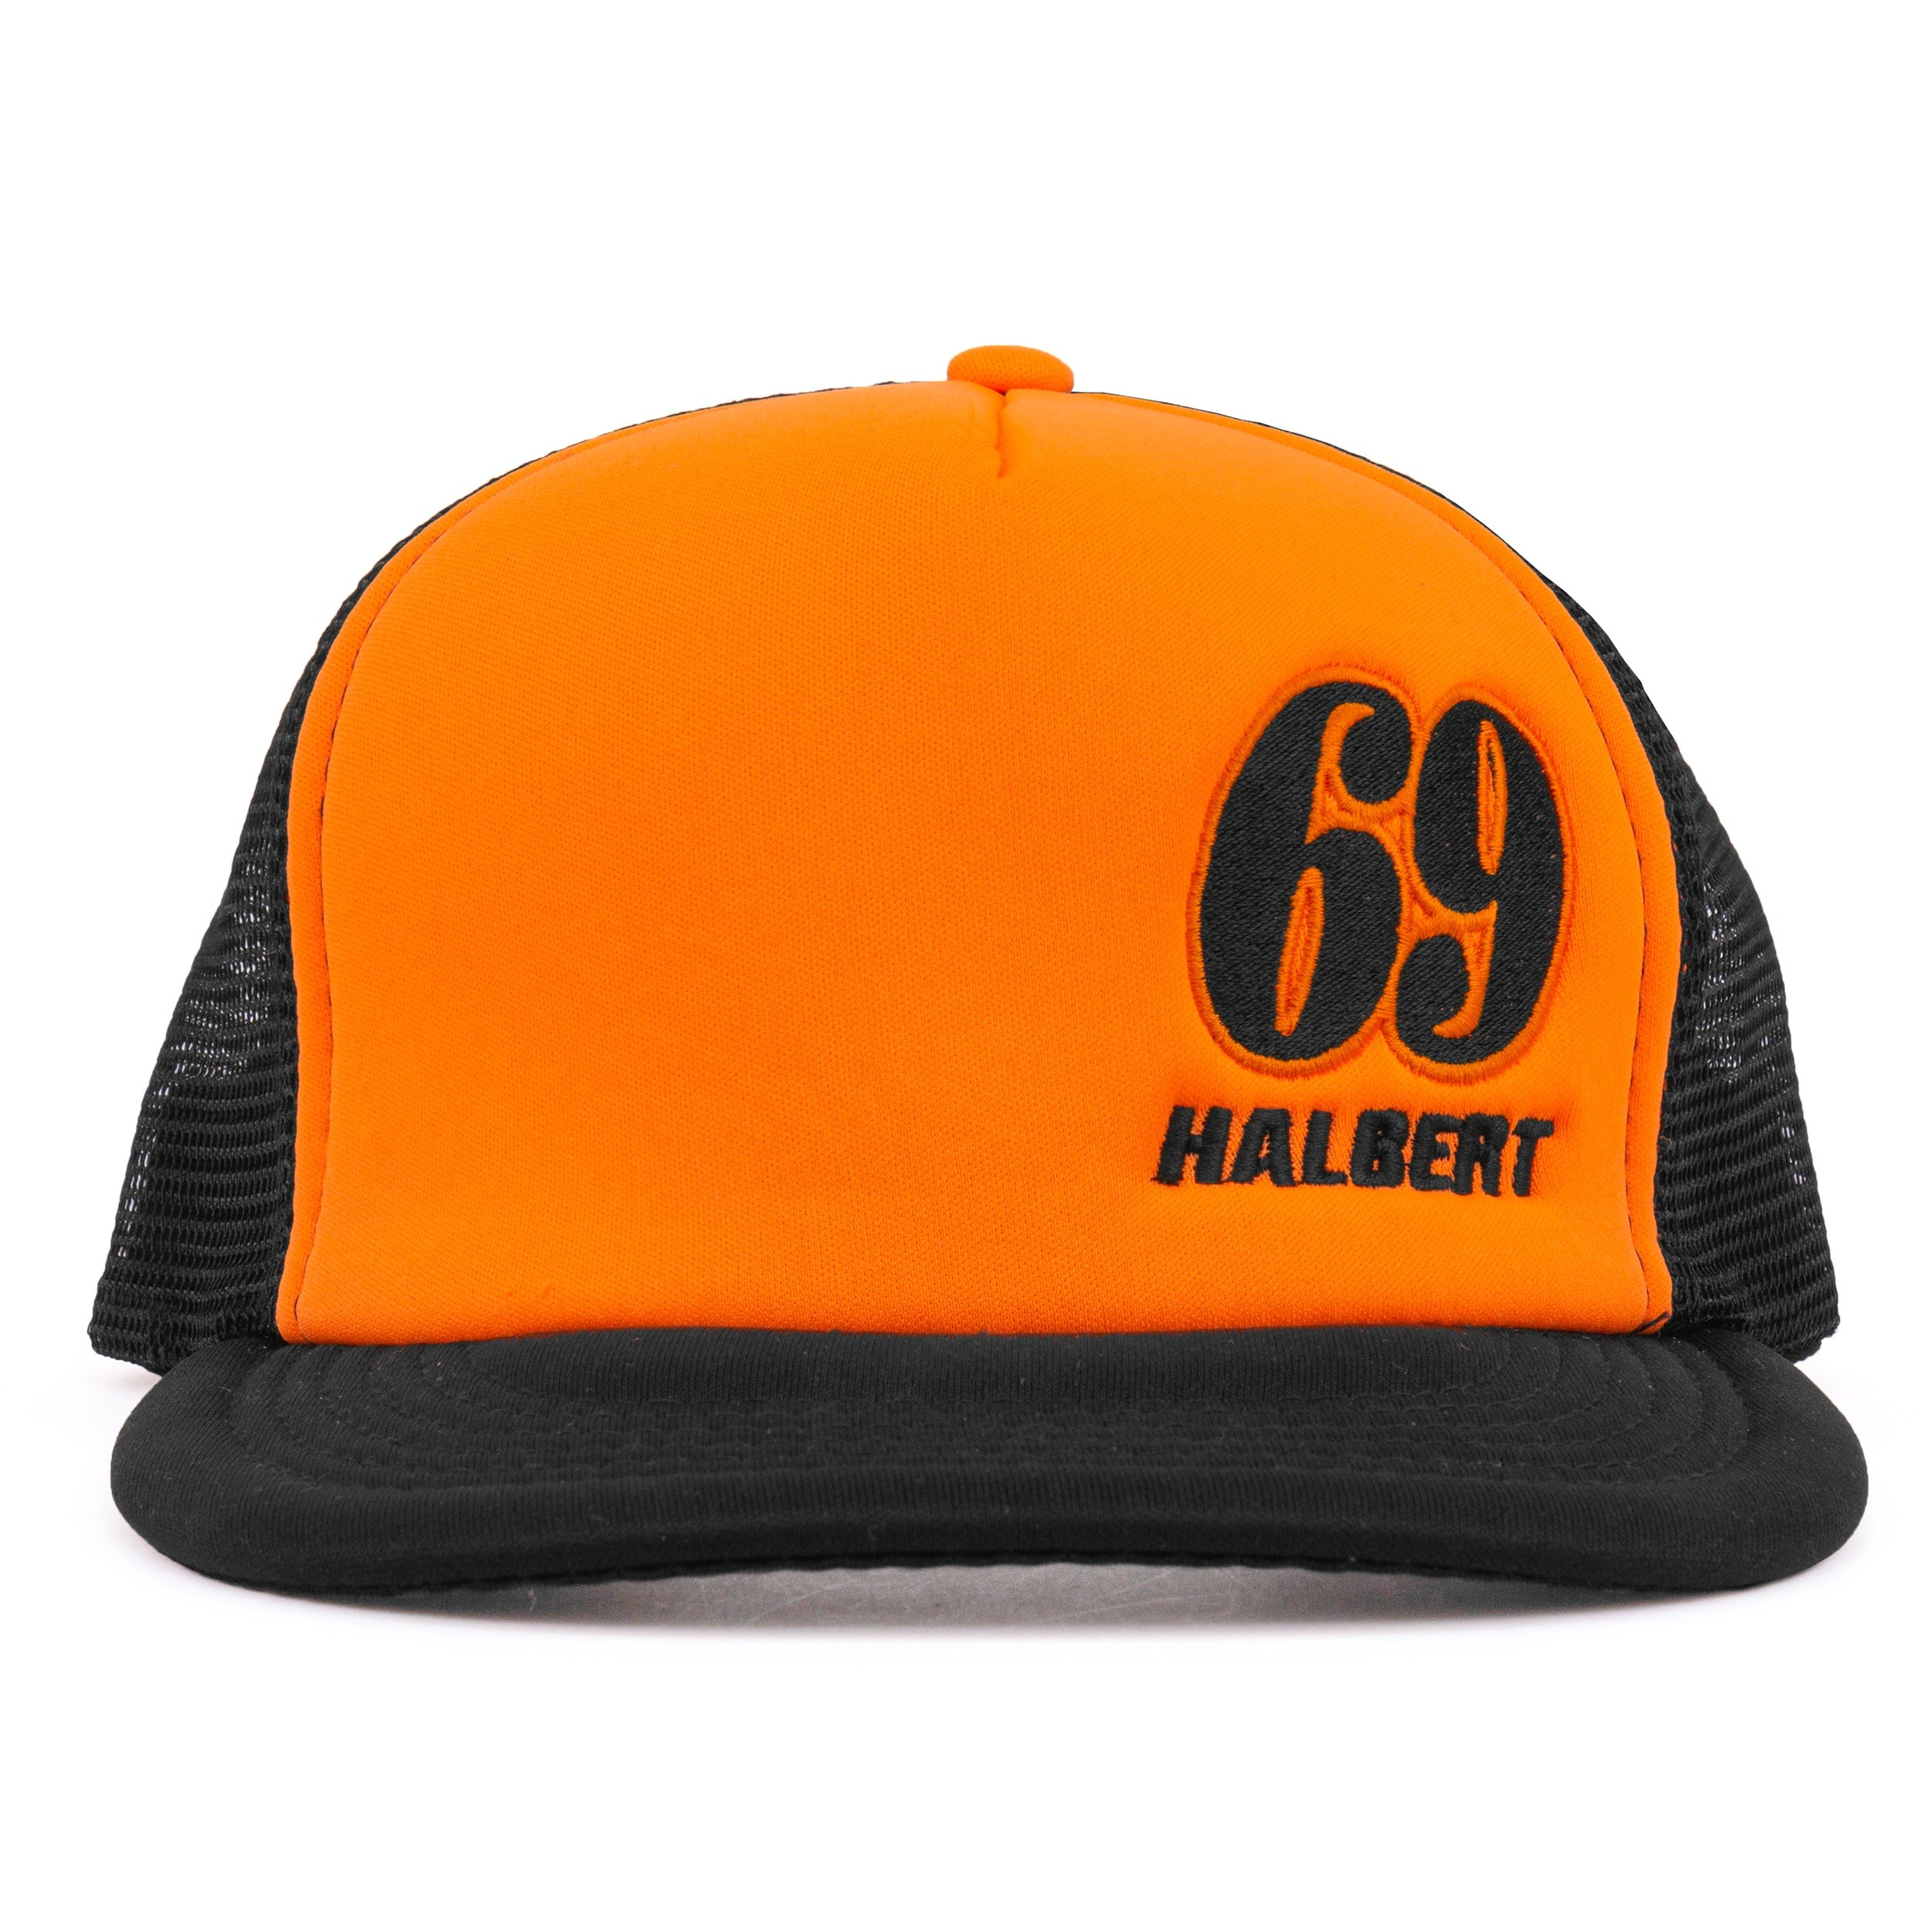 Halbert: 2018 Mesh - Hat  Orange Black-Regular